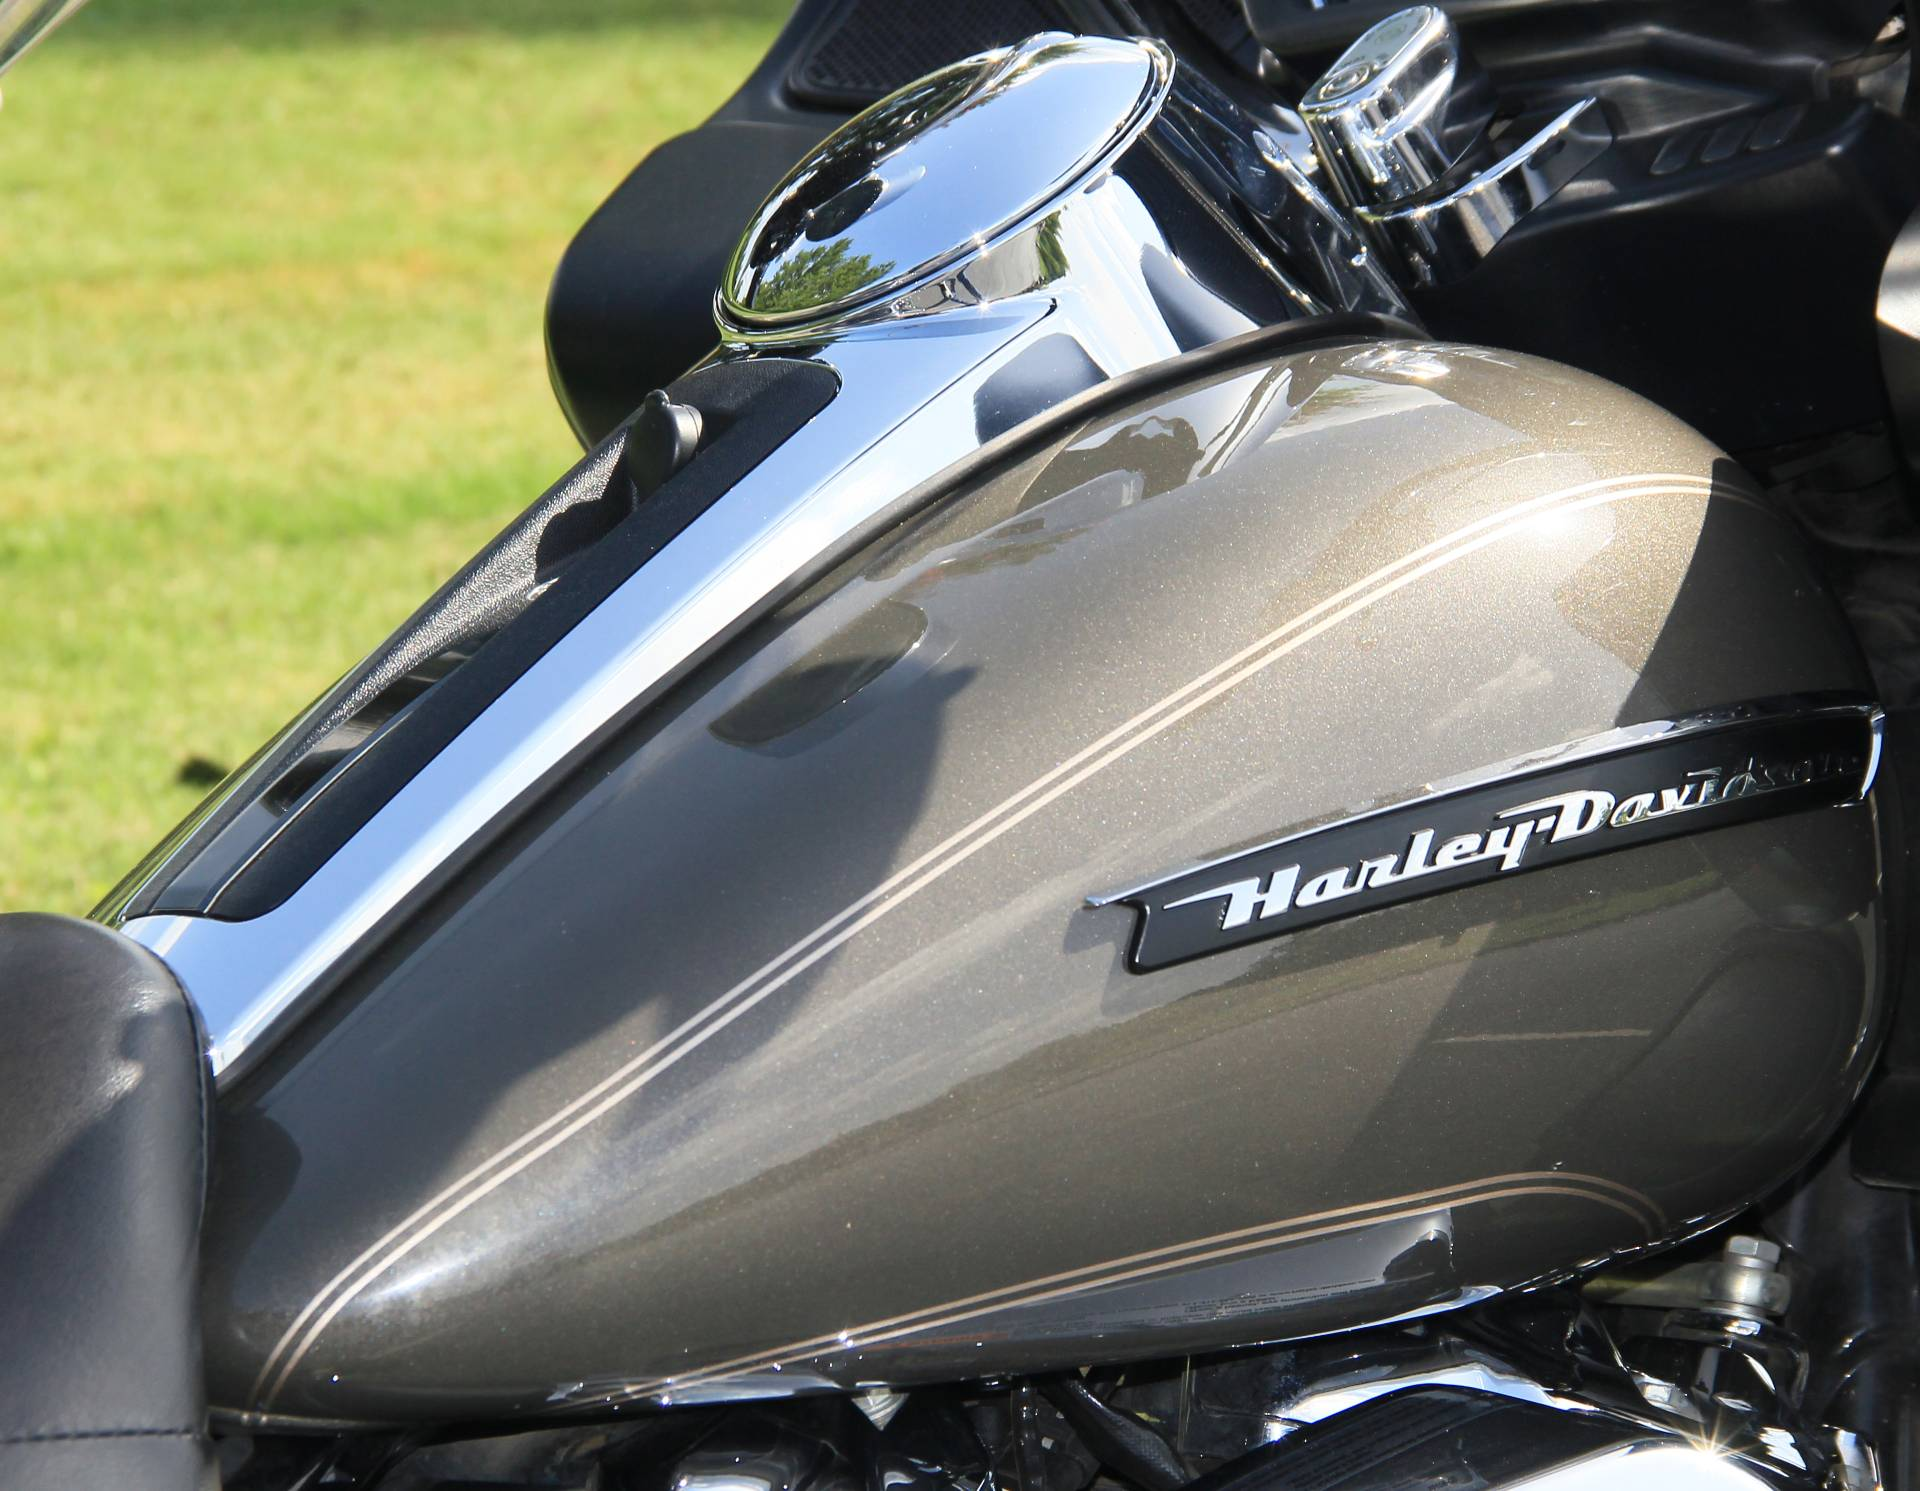 2018 Harley-Davidson Road Glide Ultra in Cartersville, Georgia - Photo 10